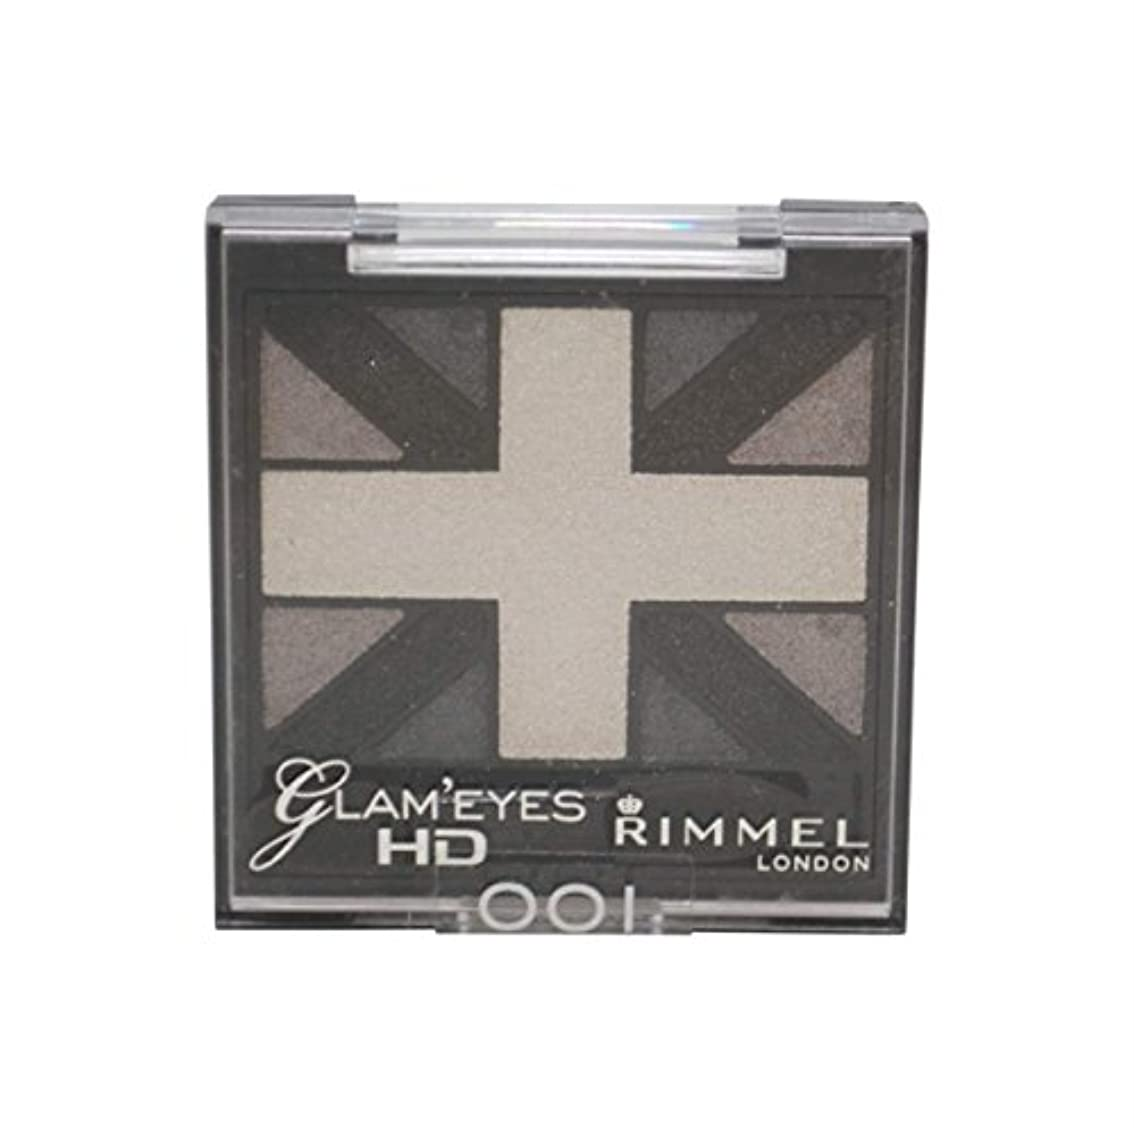 ホラー見るオリエンタルRIMMEL LONDON Glam'Eyes HD Eyeshadows Black Cab (並行輸入品)